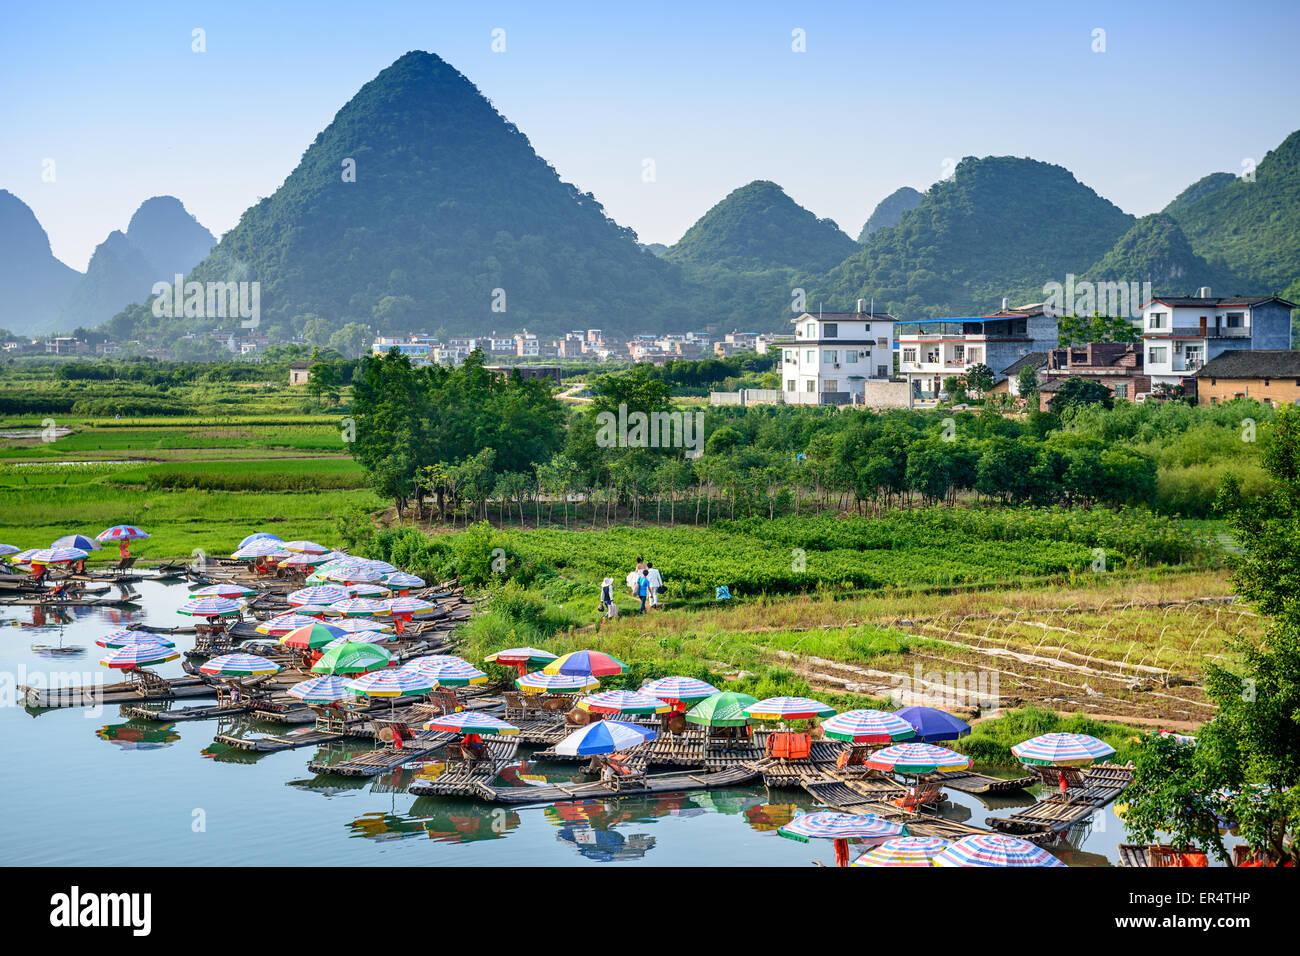 Yangshuo, China on the Li River. Stock Photo